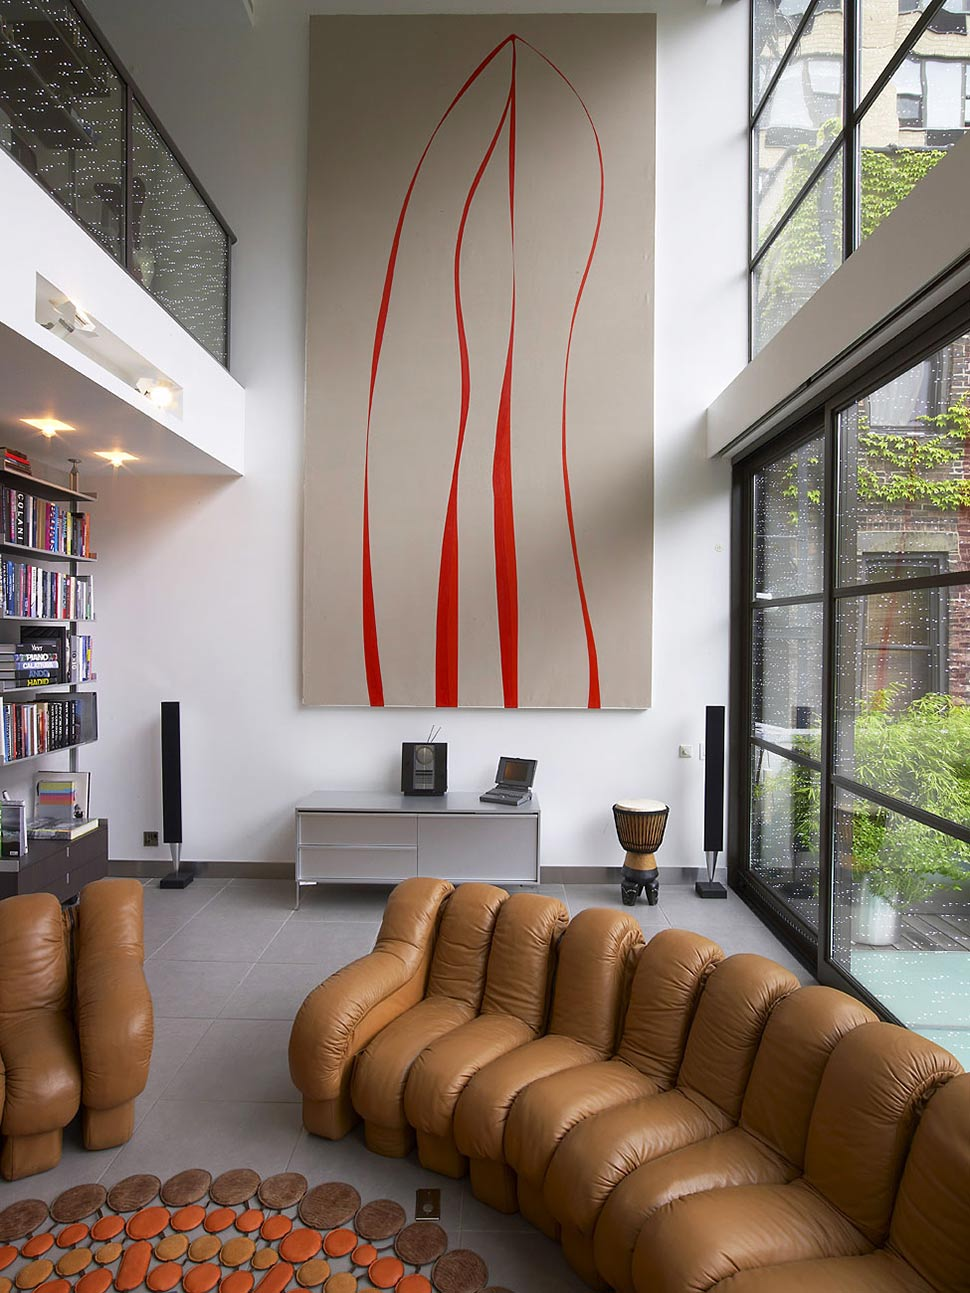 Glass Walls, Art, Bookshelf, Townhouse Renovation in Gramercy Park, New York